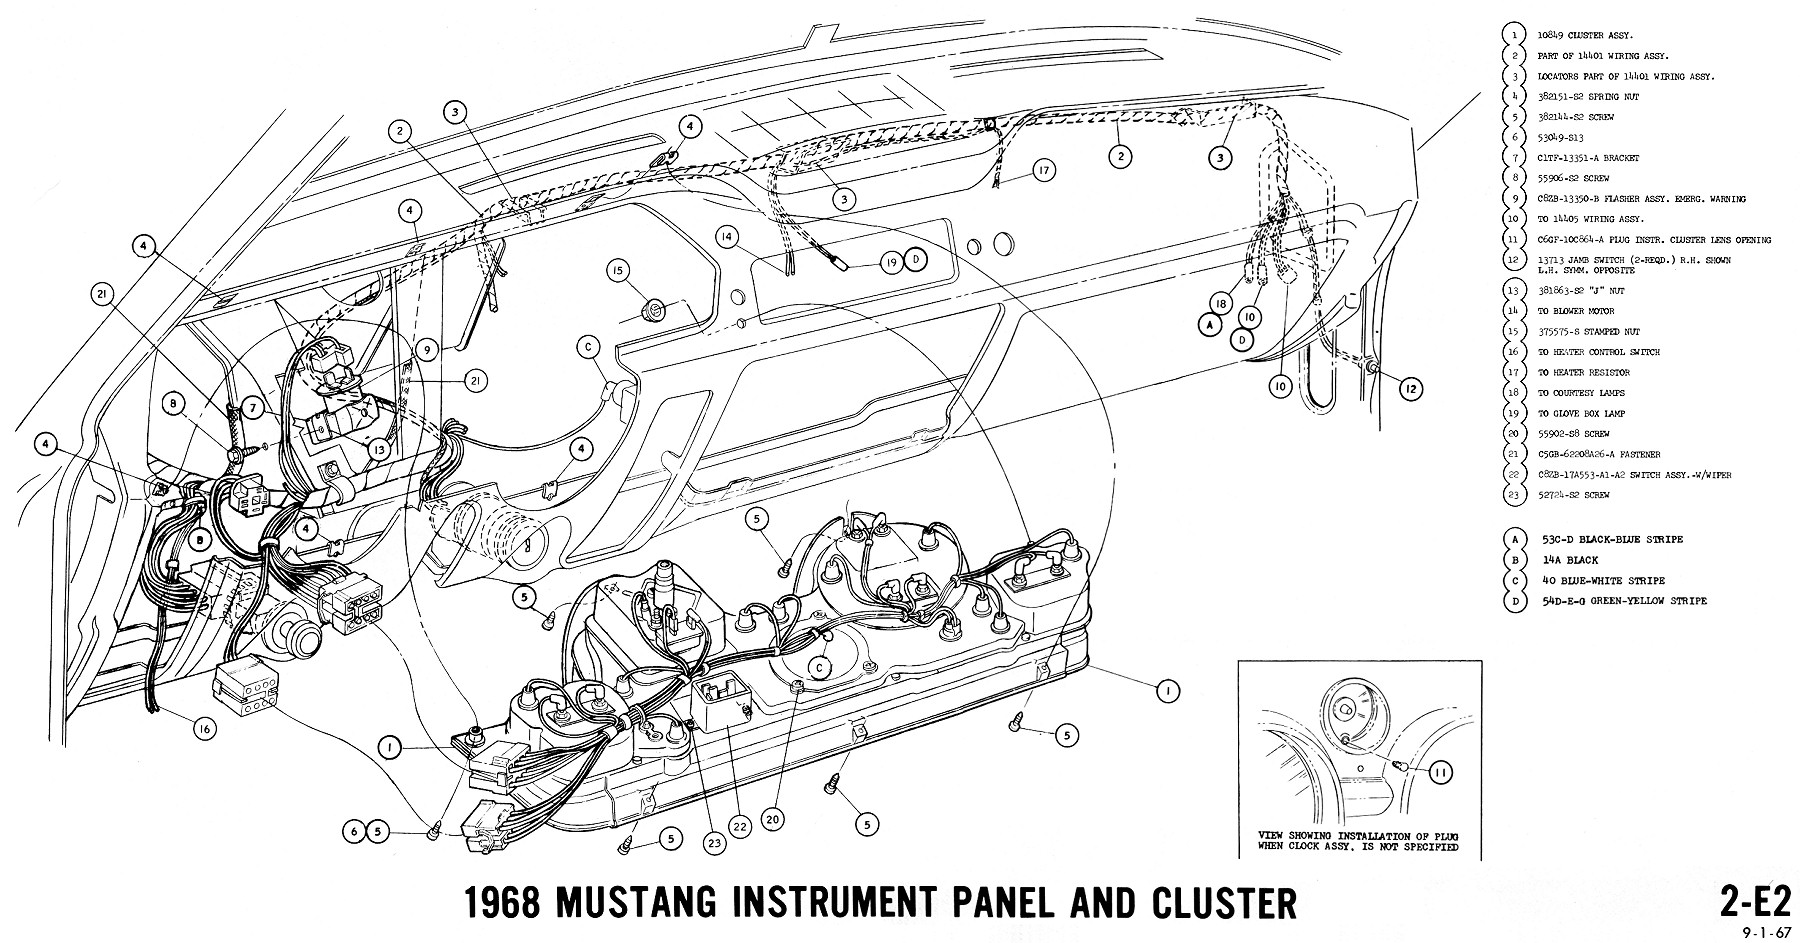 68 Mustang Wiring Harness Simple Diagram 86 Gt Engine 1968 Diagrams And Vacuum Schematics Average Joe 69 Camaro